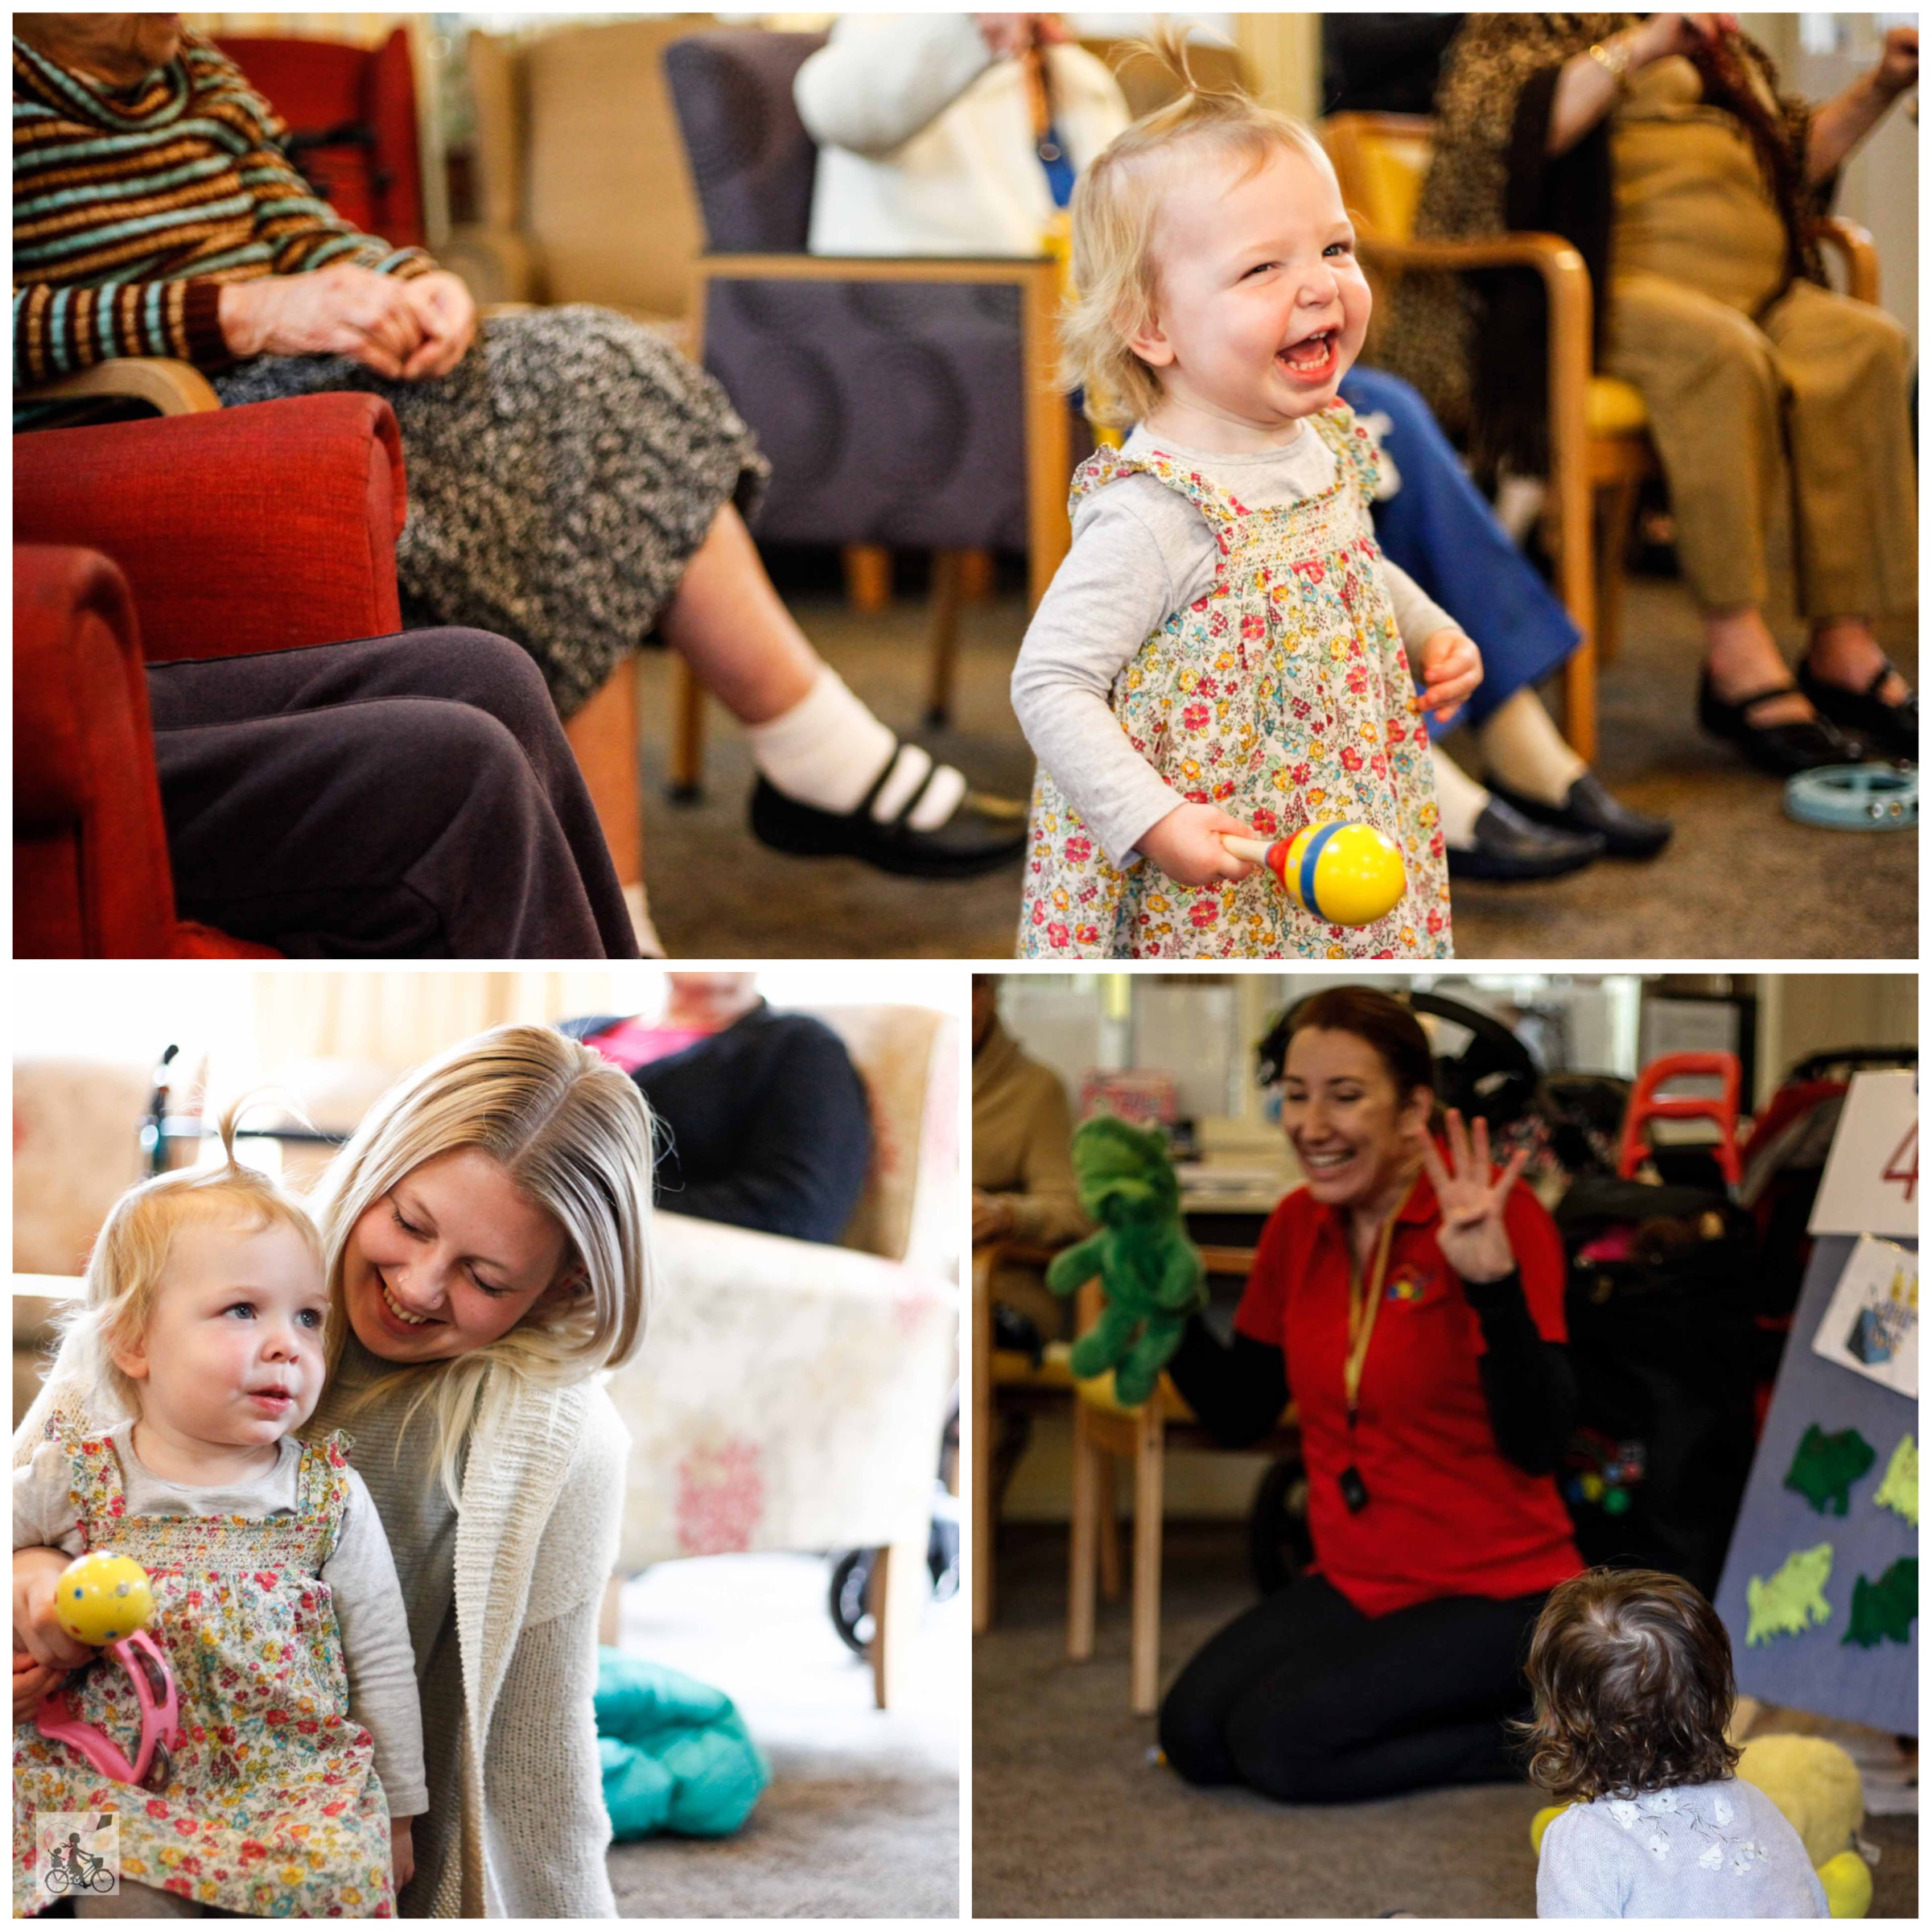 Mamma Knows North - Intergenerational Playgroup